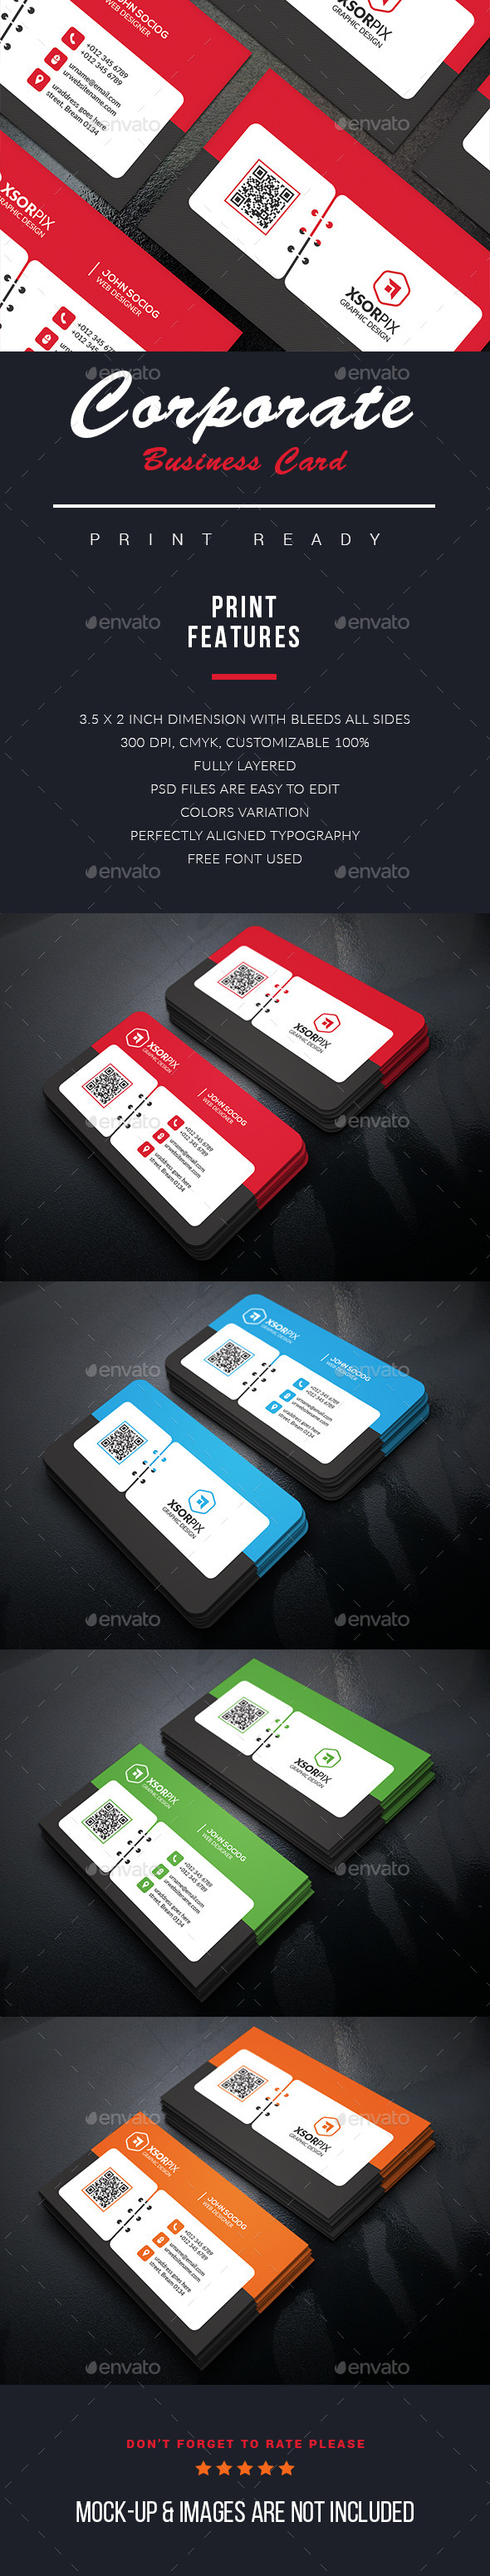 Event Business Cards - Business Cards Print Templates